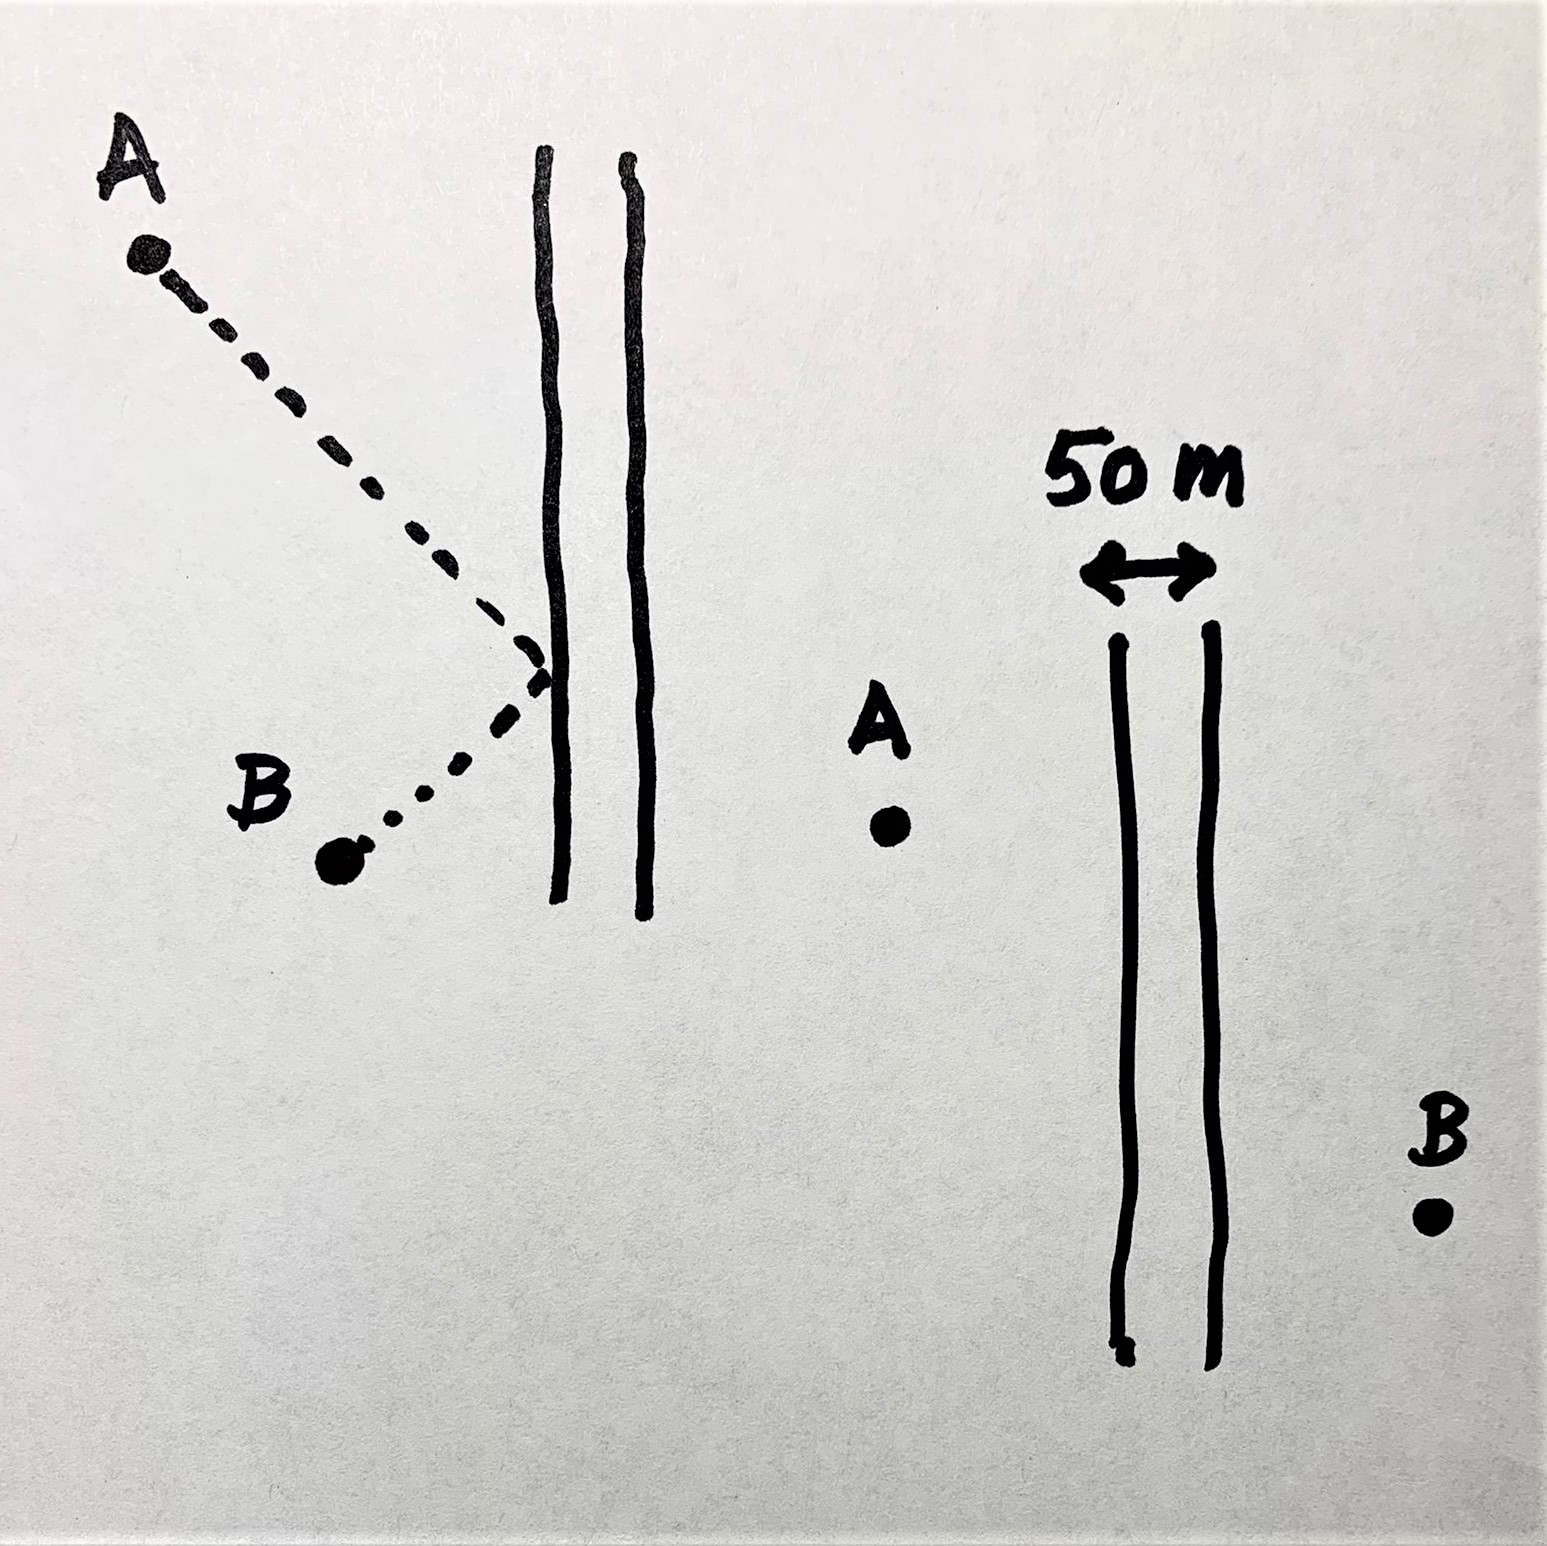 Two math puzzles that ask about the shortest road between two cities near a river